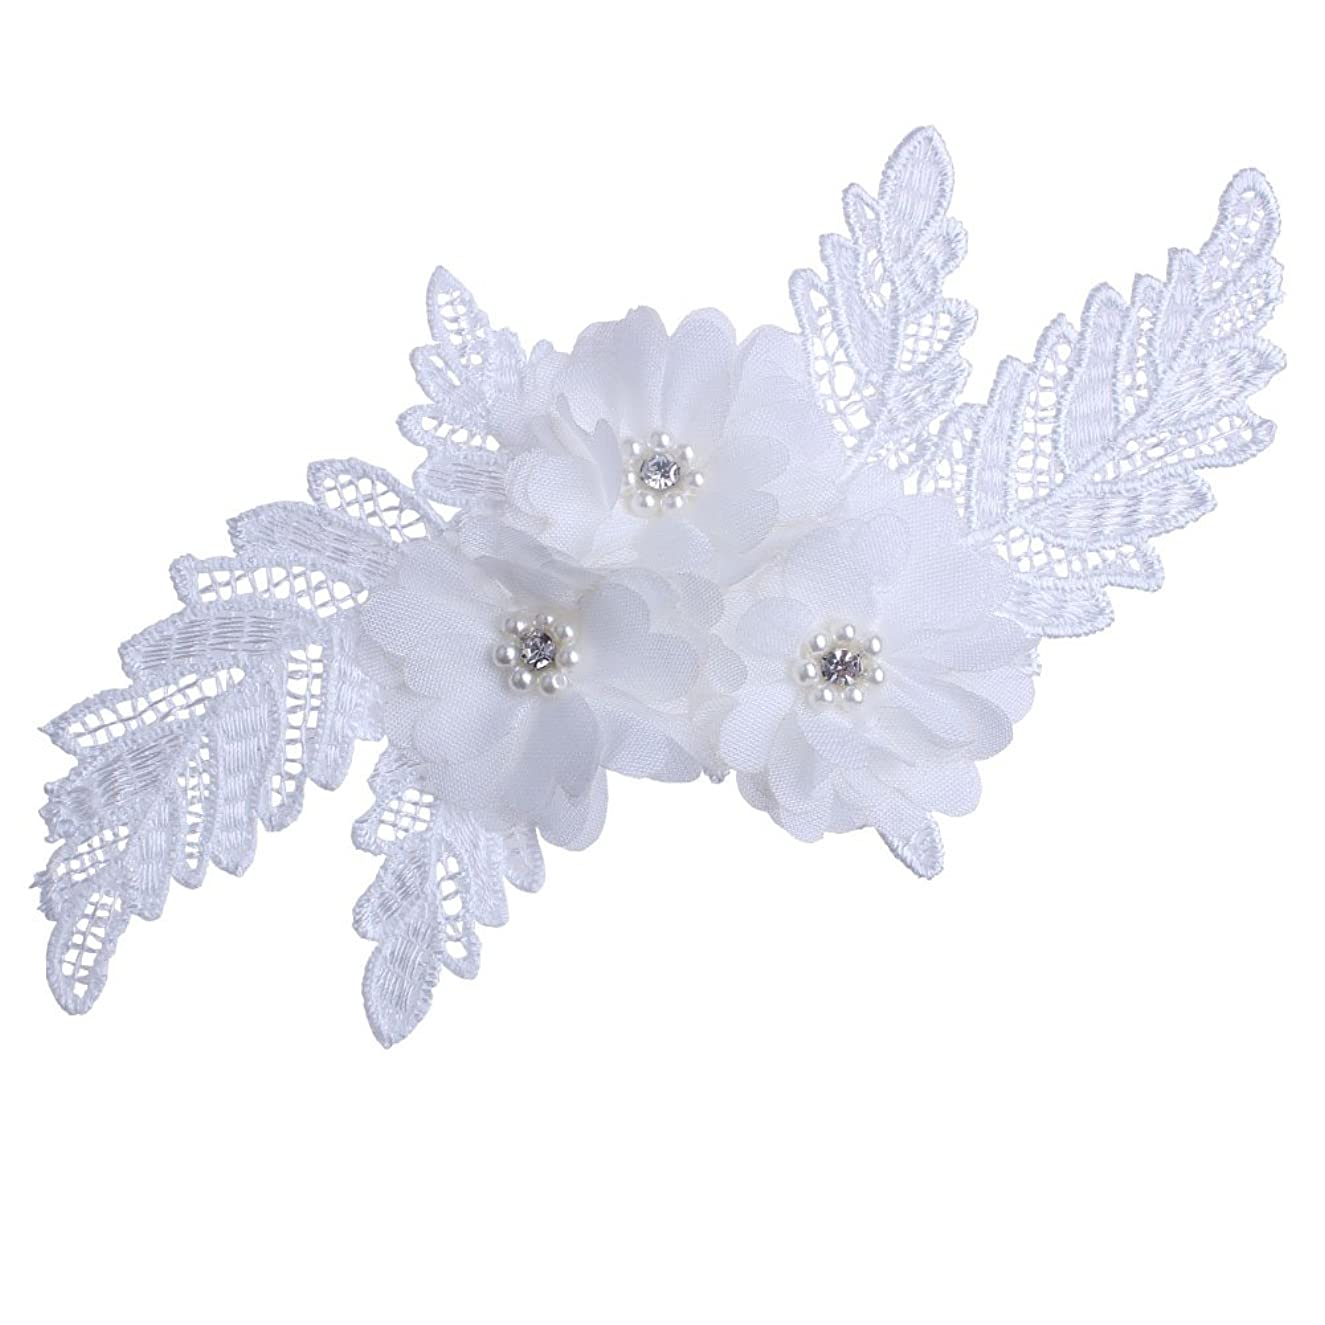 White Elagant Pearl Beaded 3D Floral Applique Thick Embroidery for DIY Wedding Dance Shirt Costume (2)